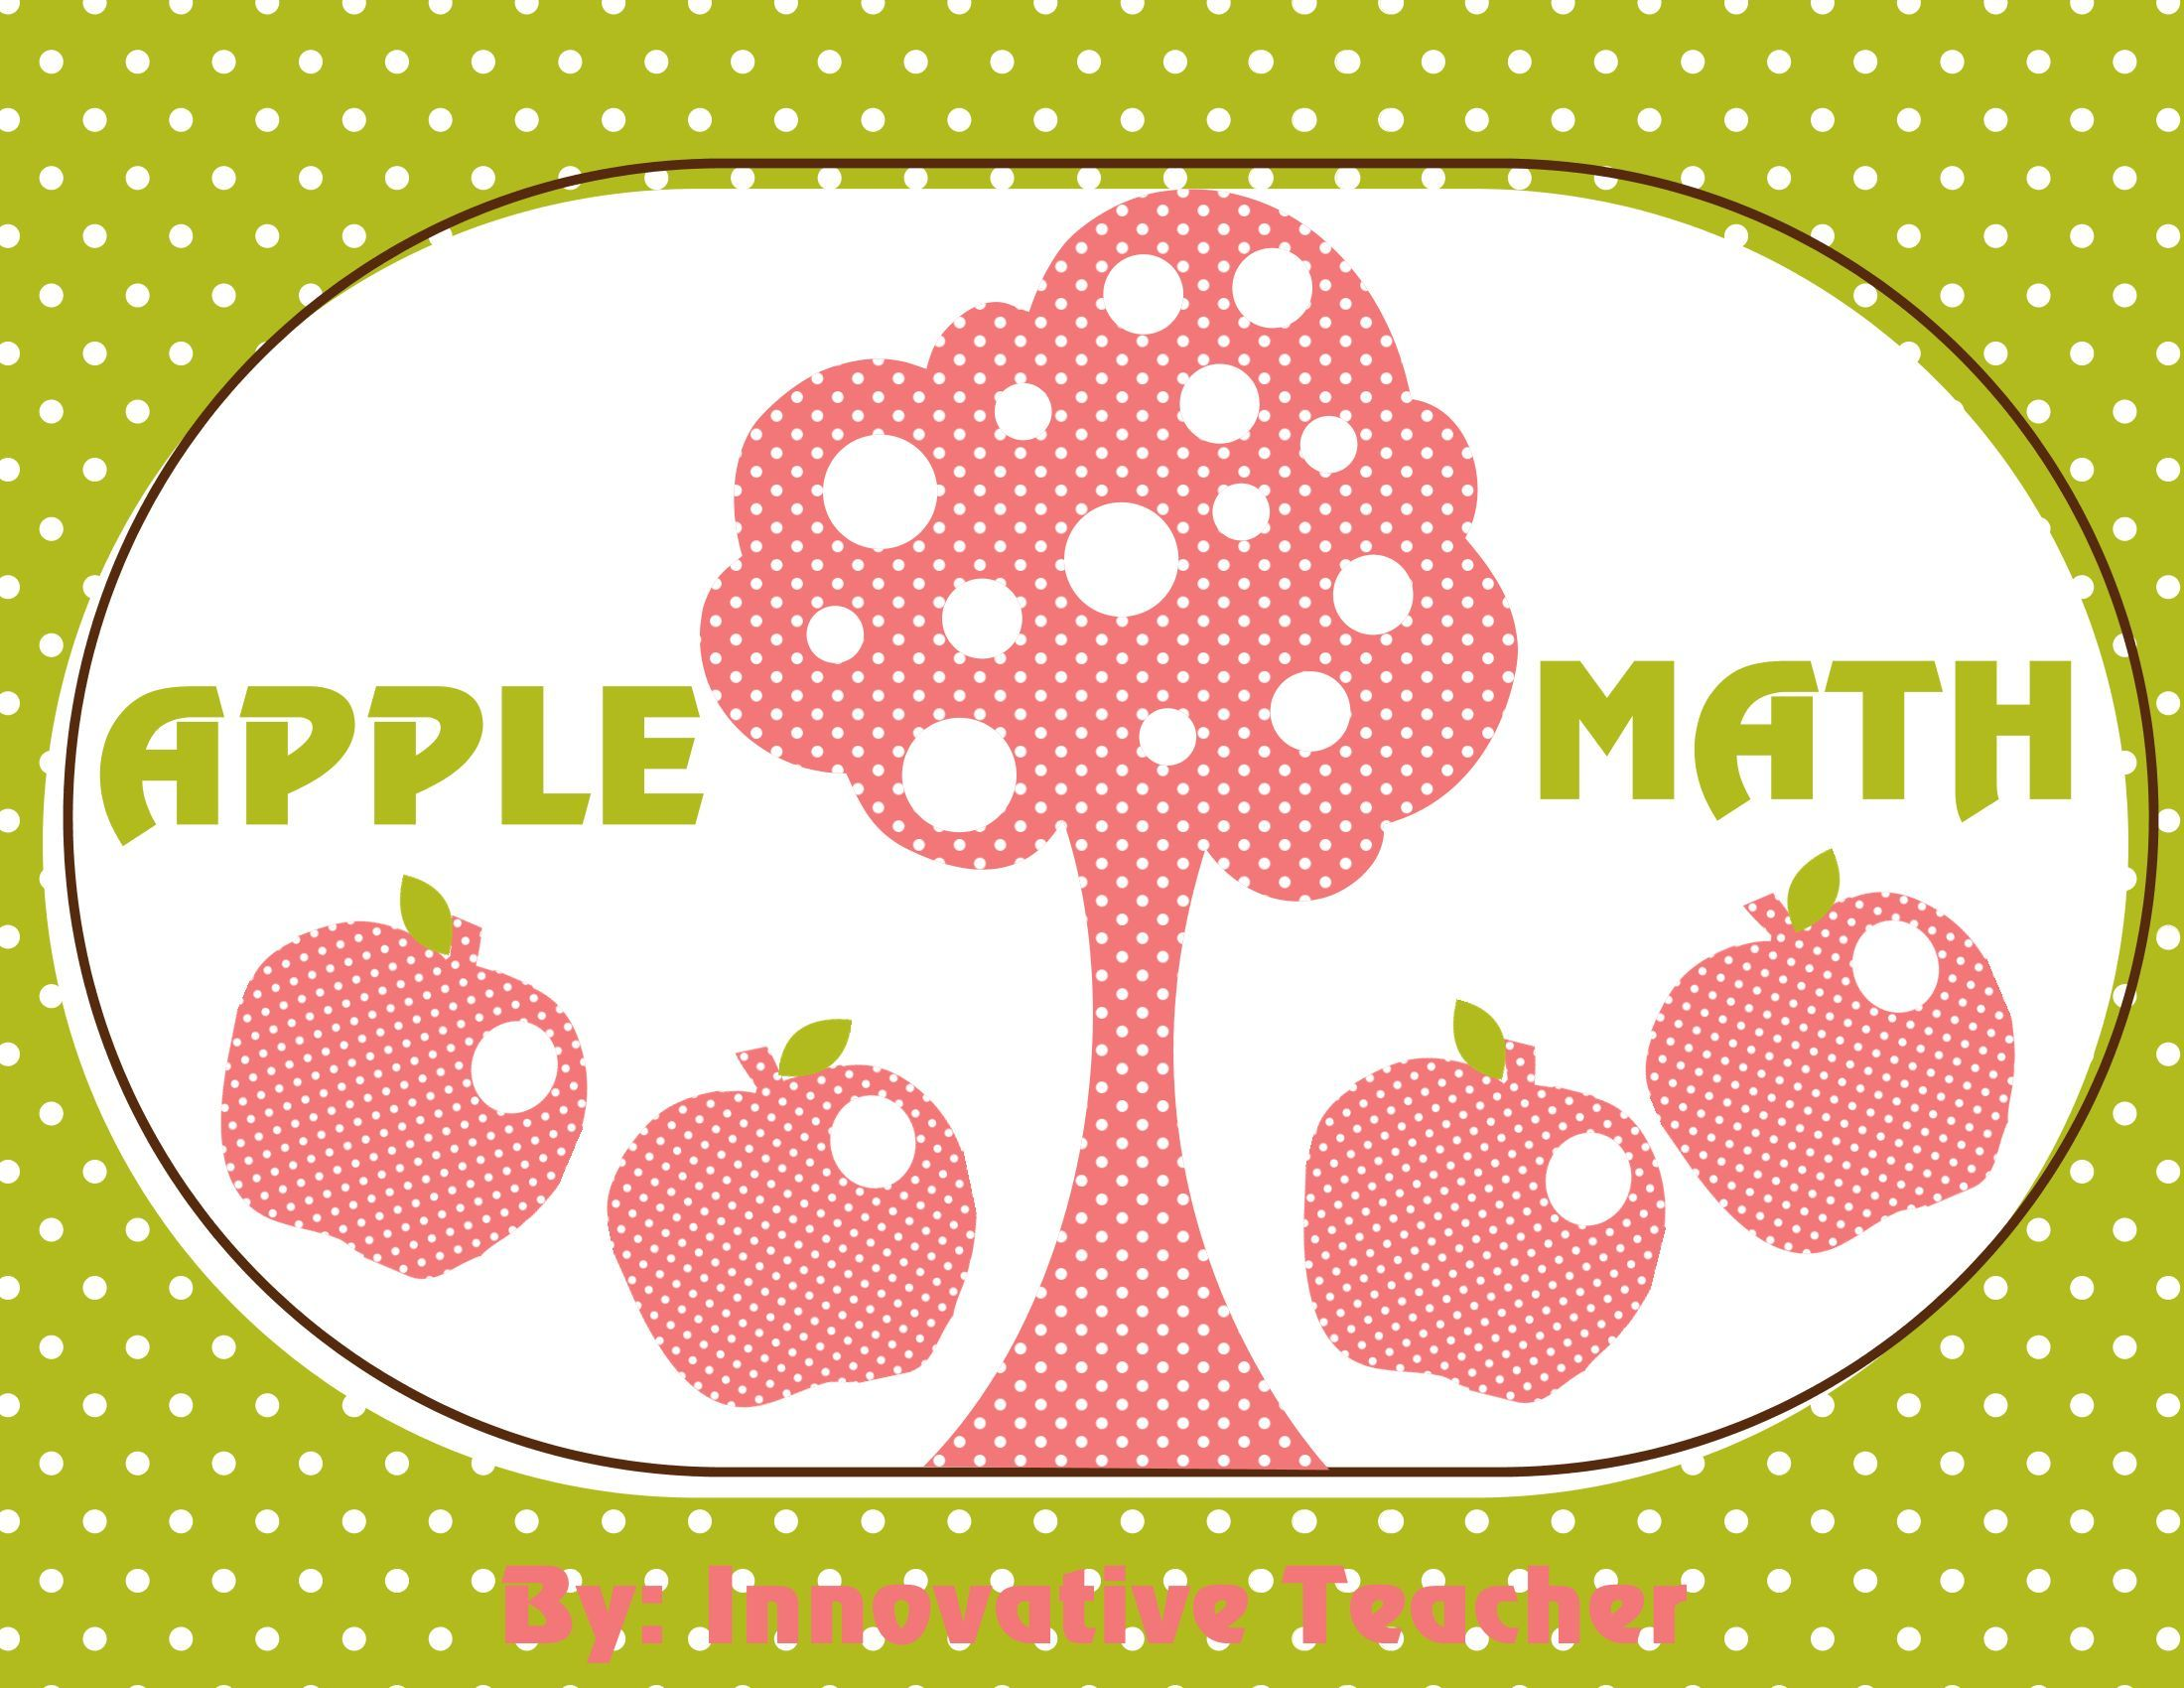 Apple Math Adding And Subtracting Activity With Images